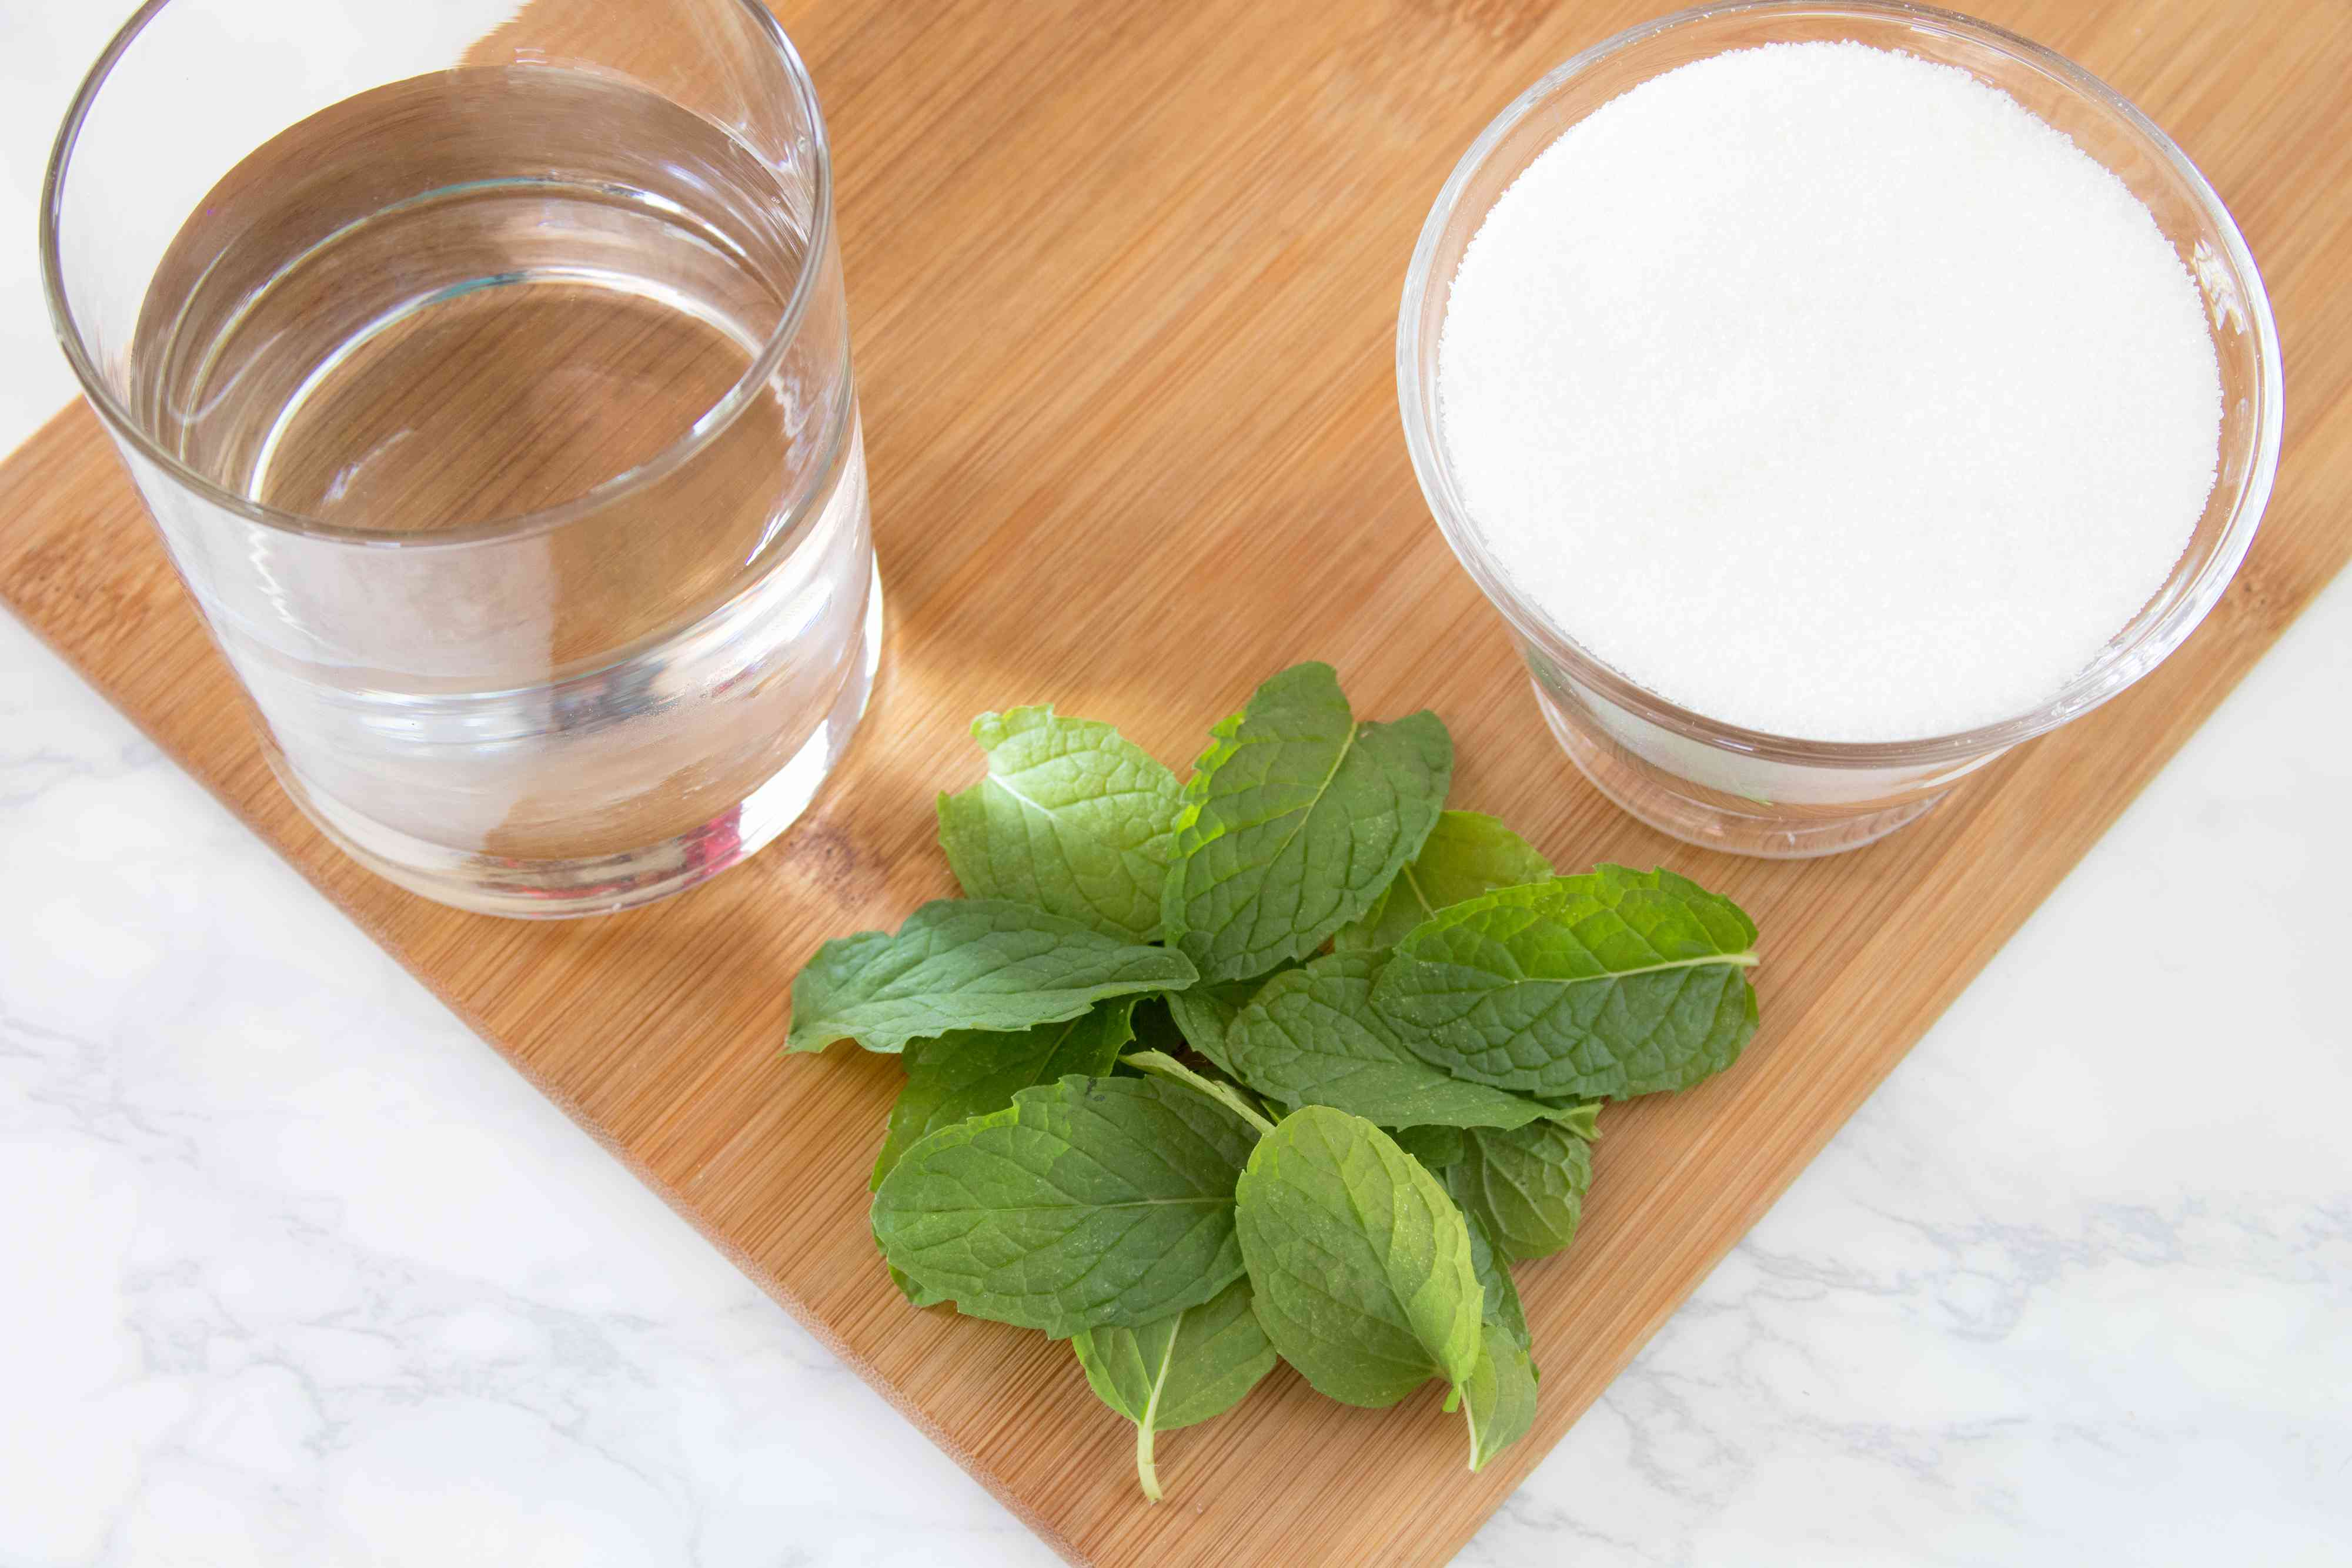 Ingredients for Mint Syrup